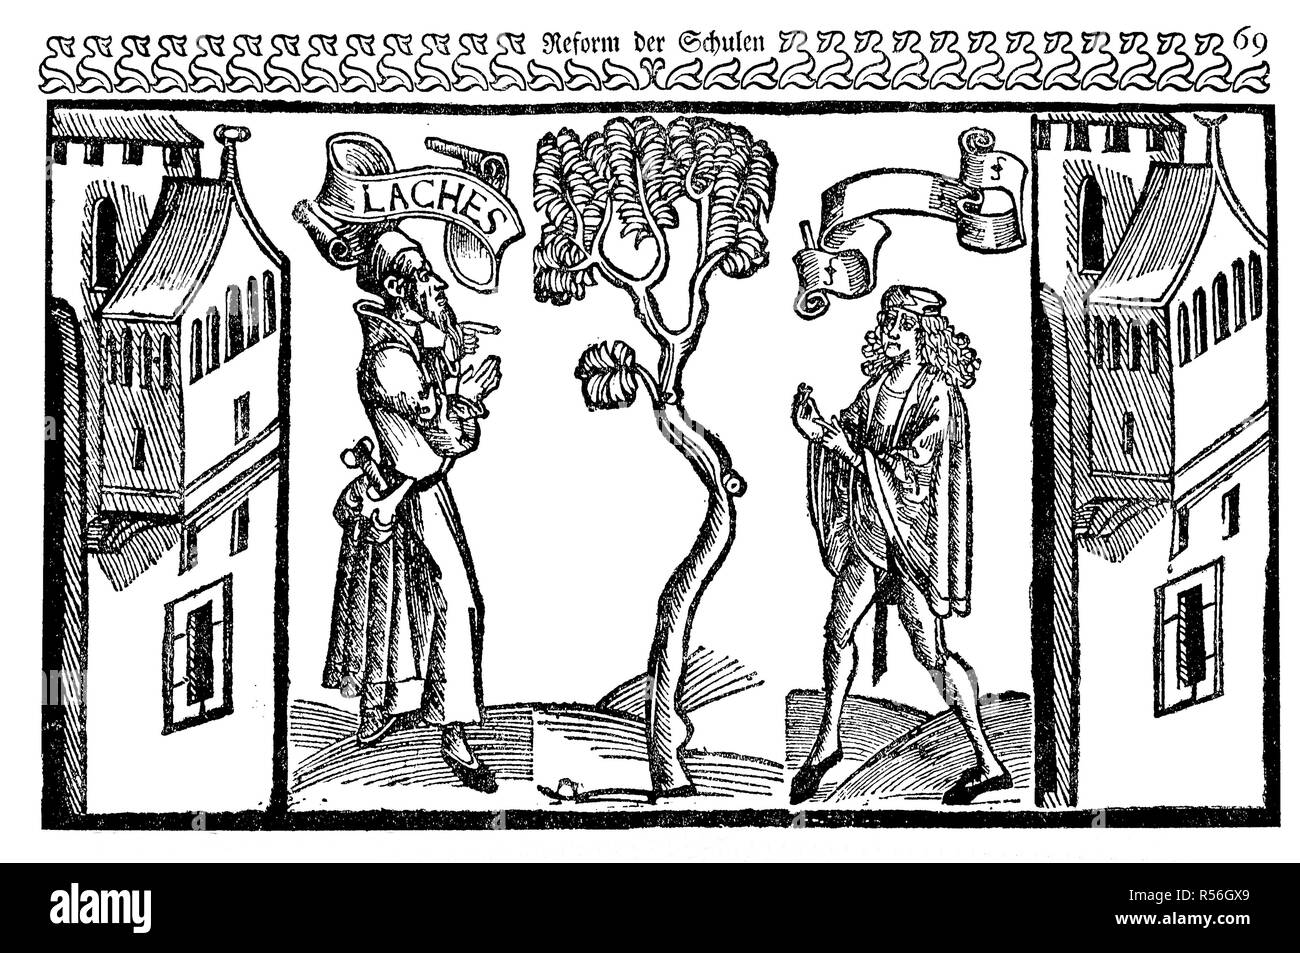 Scene from Eunuchus, The Eunuch, a comedy written by the Roman playwright Terence, 1496, woodcut, England Stock Photo